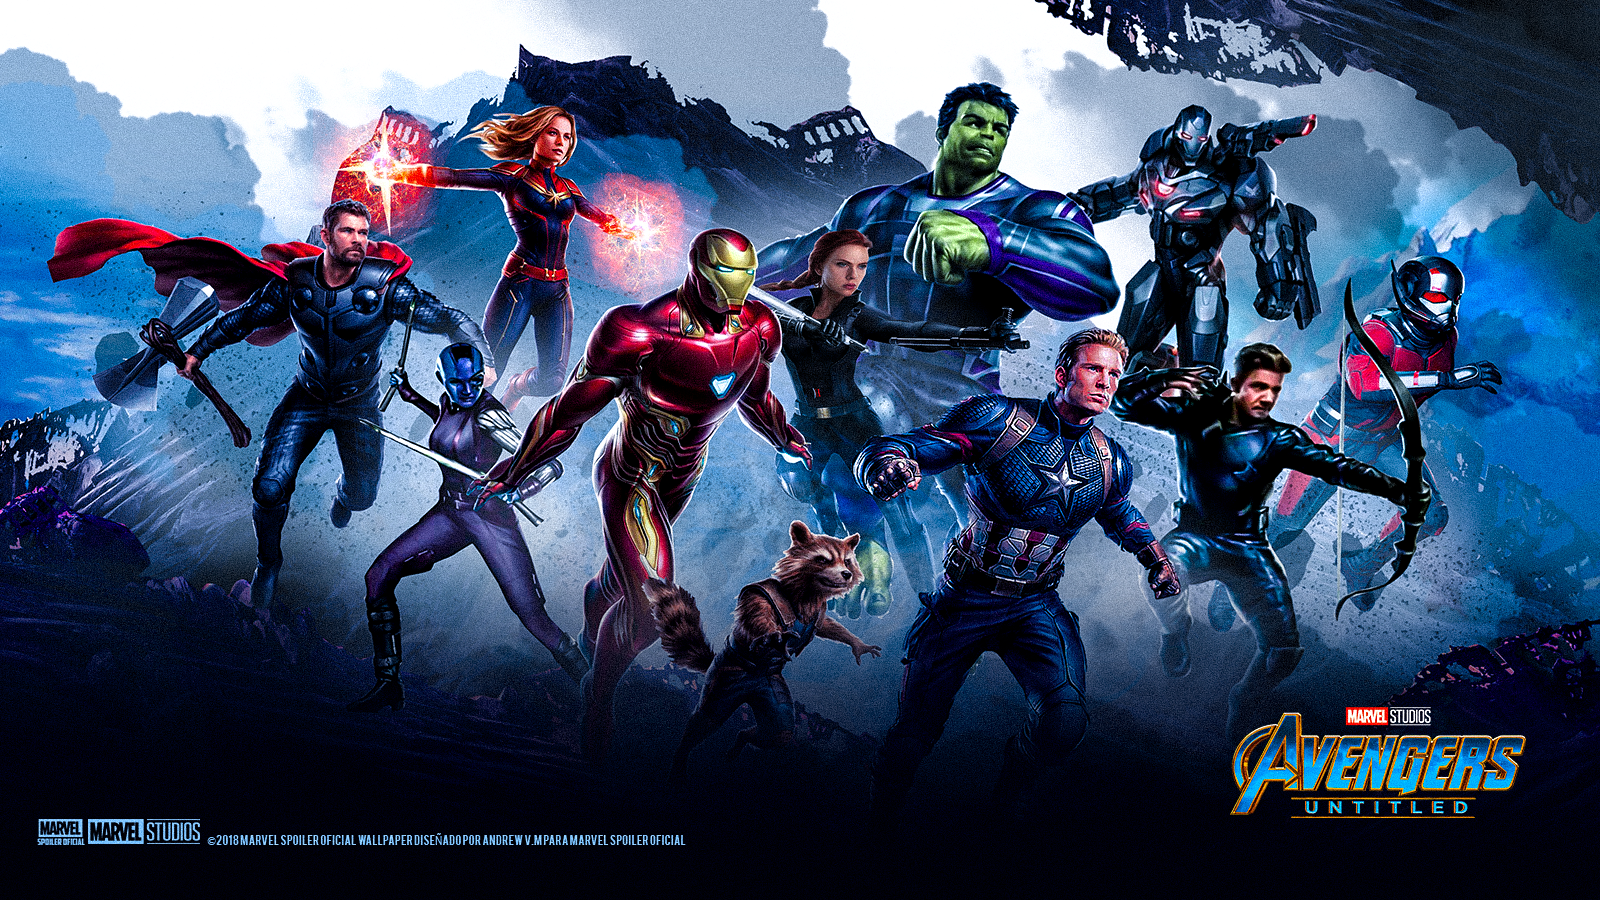 Avengers Wallpaper Hd 1080p Posted By Zoey Simpson